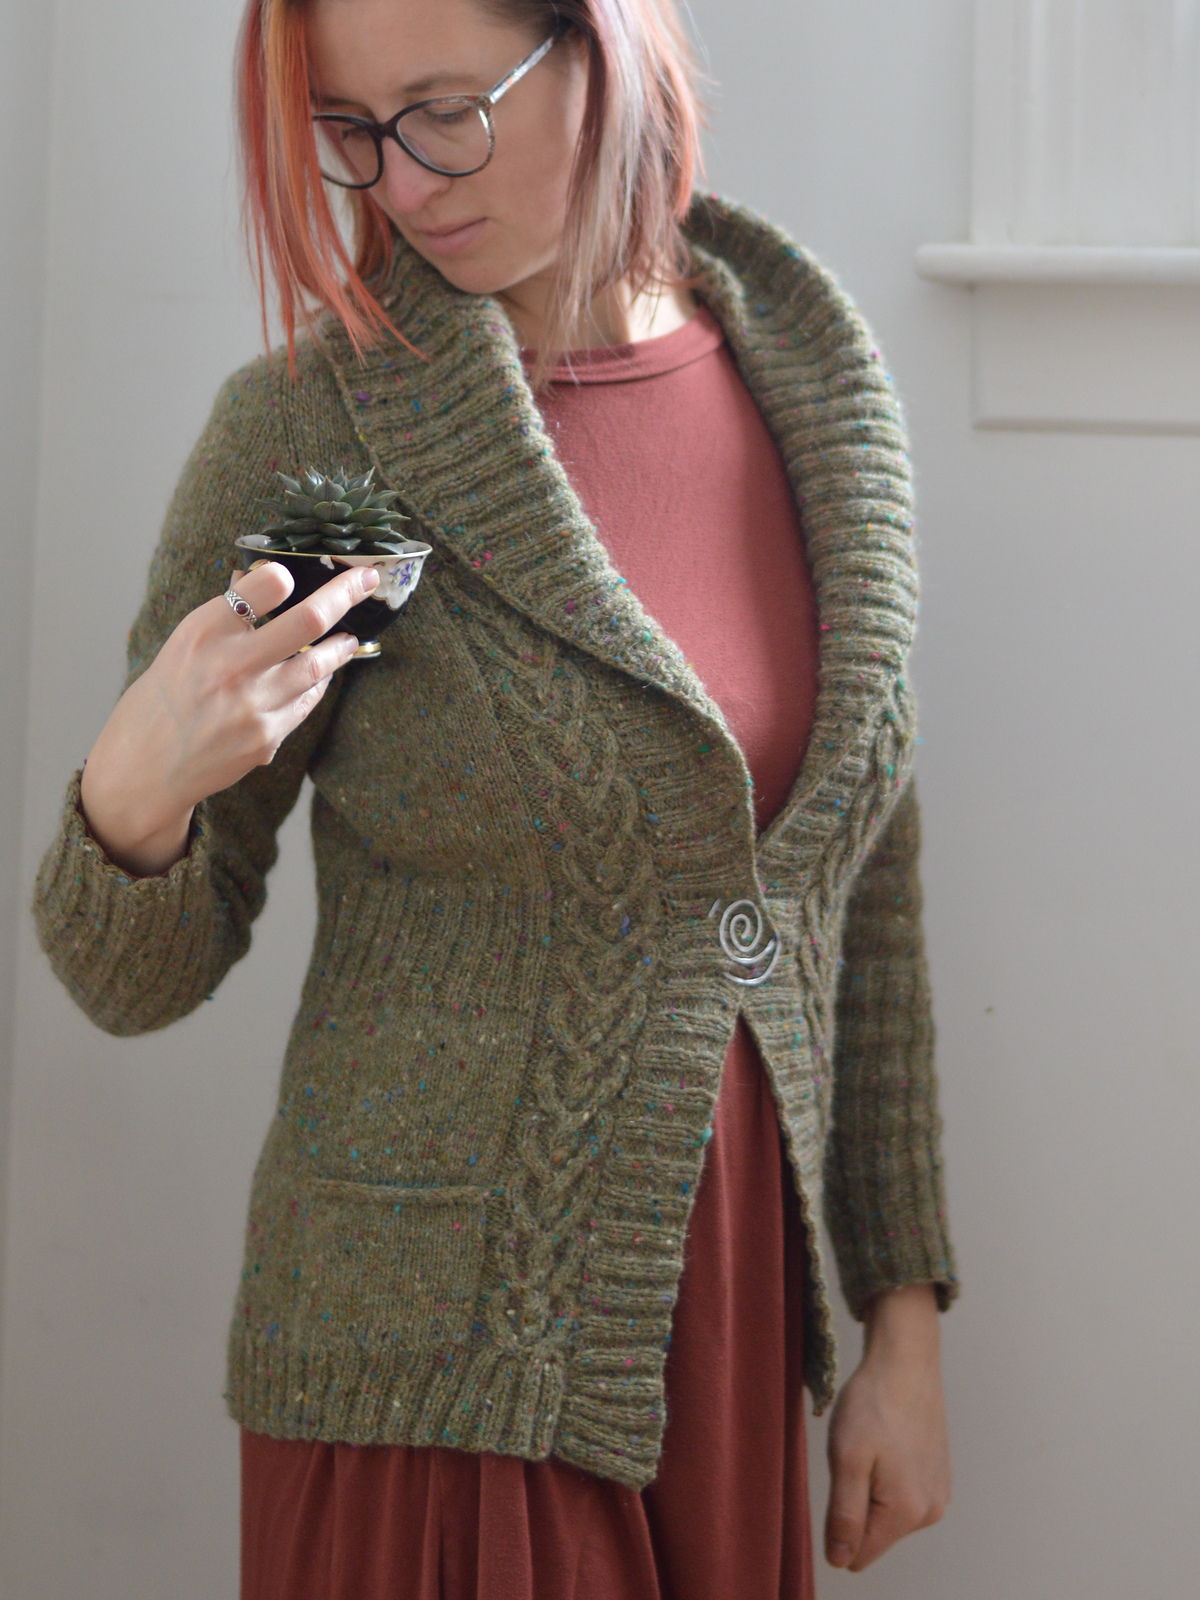 side view of a woman in an olive sweater with cable details